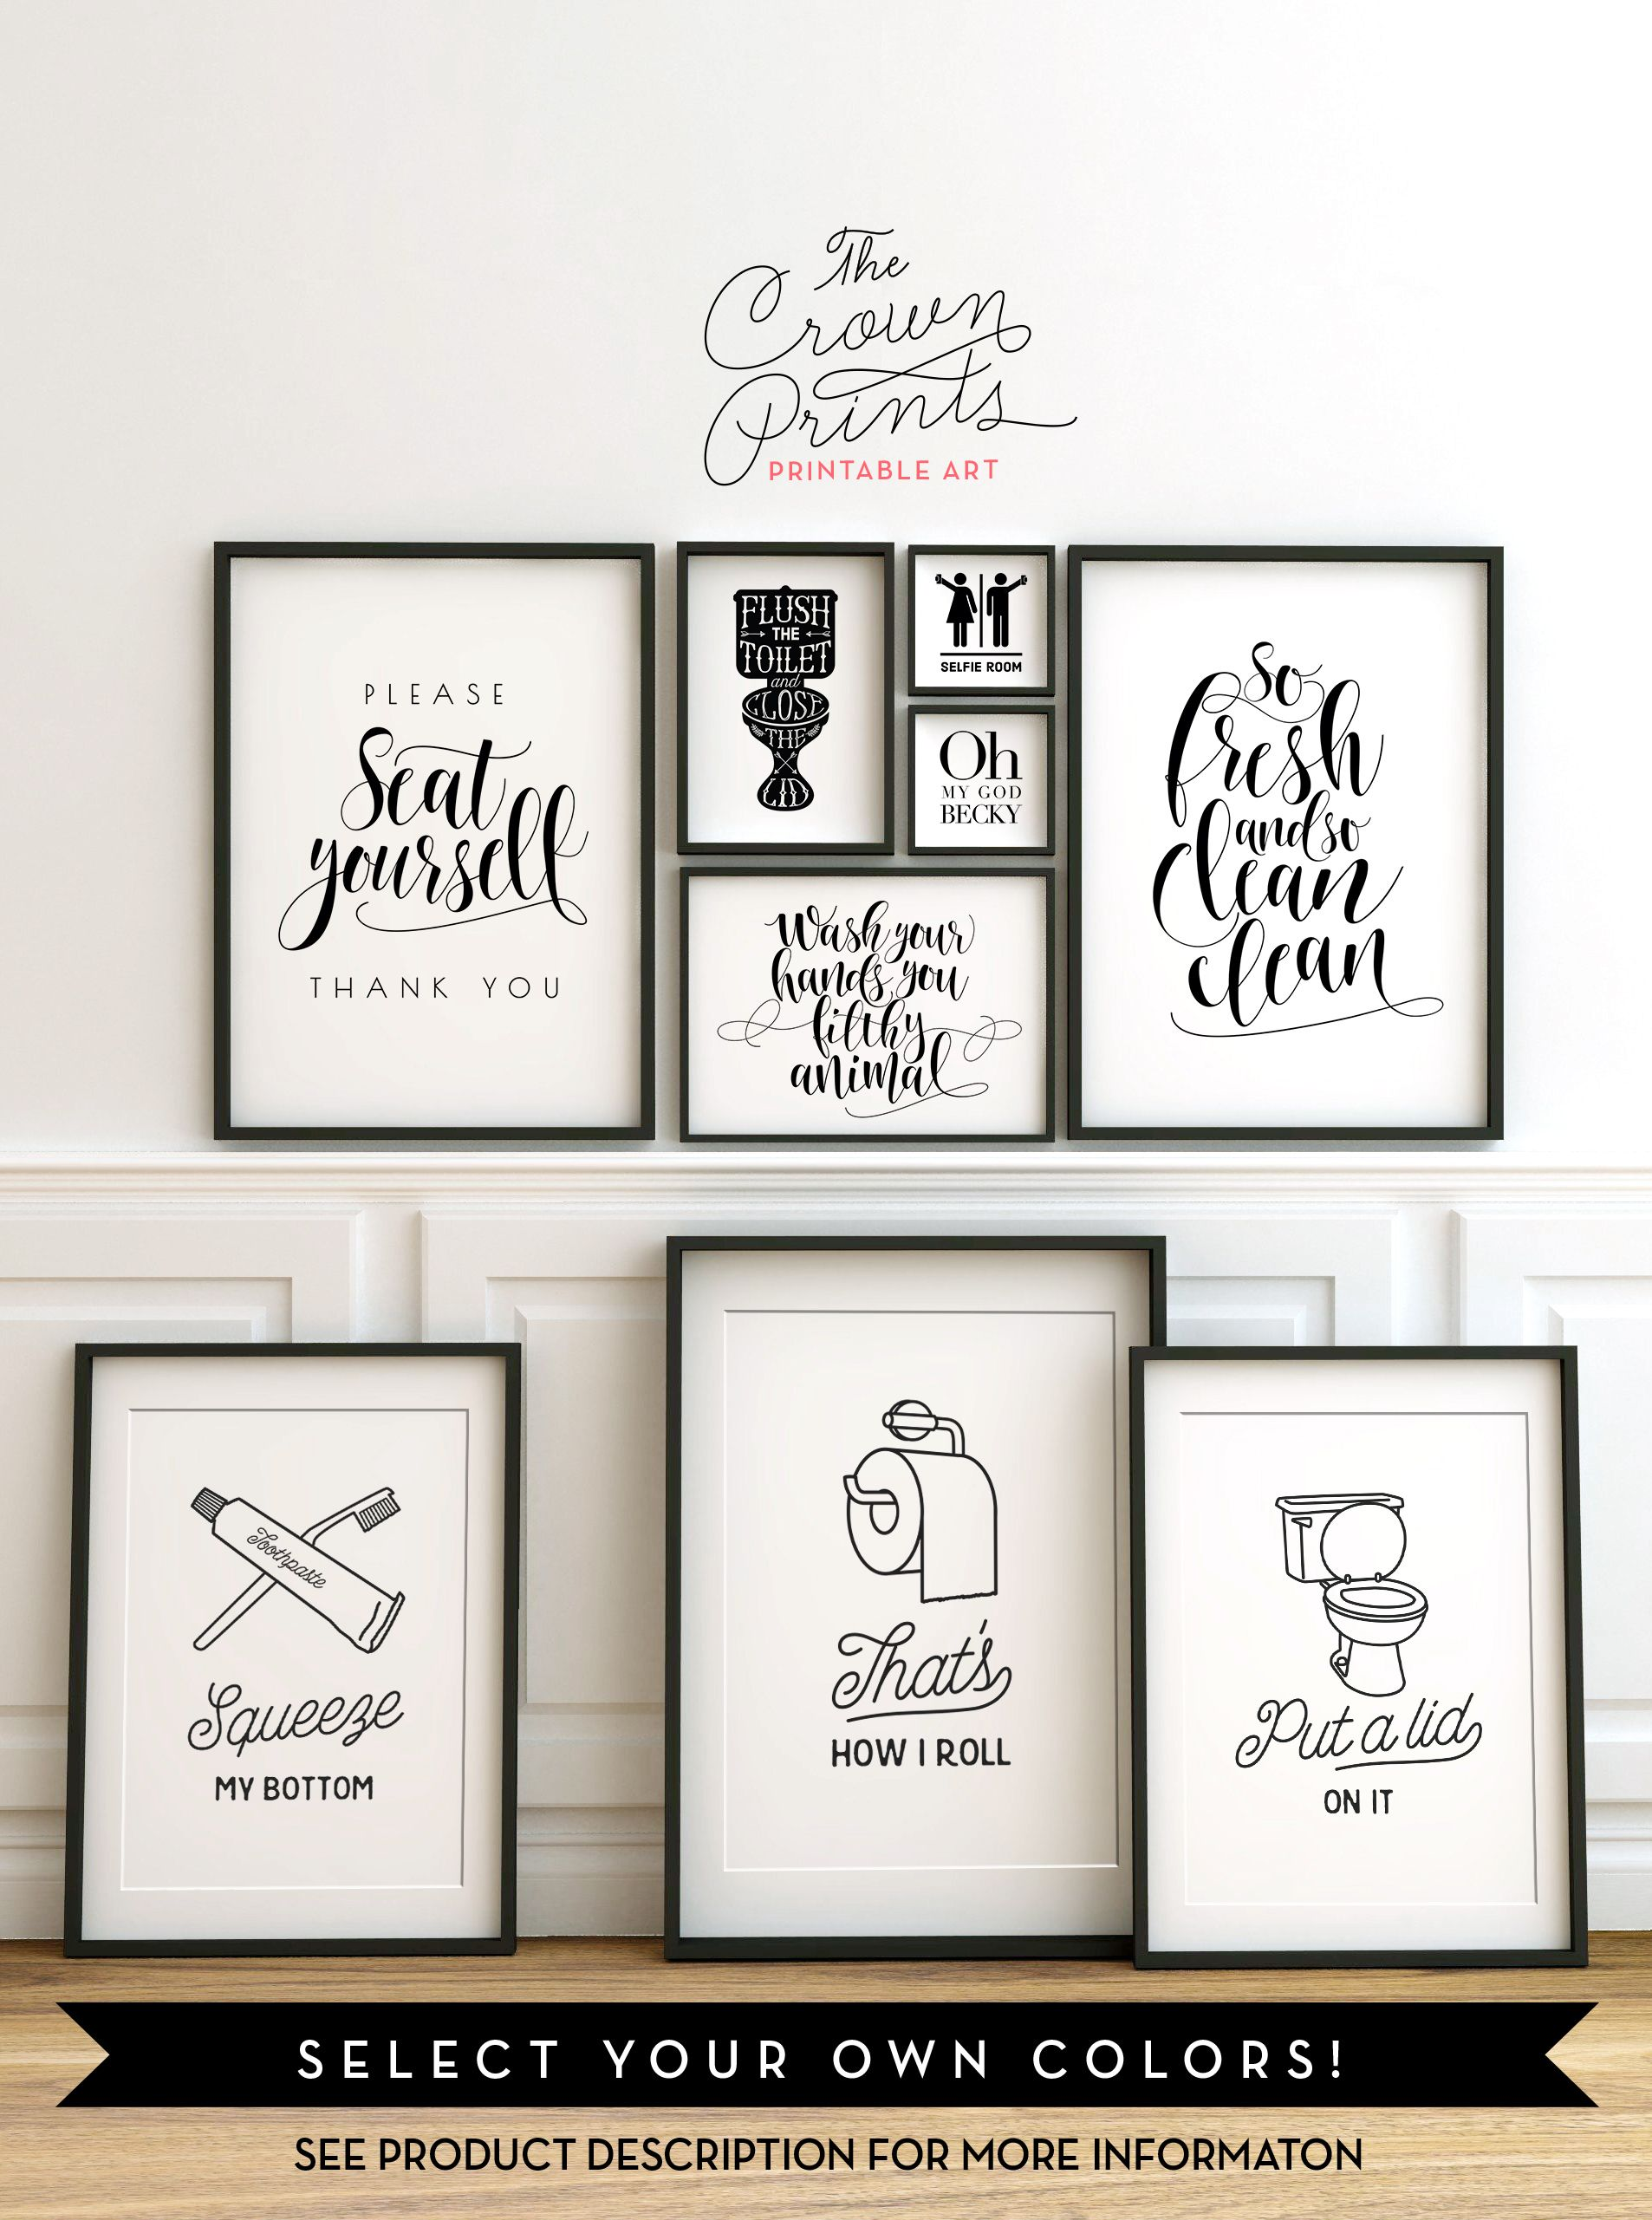 Printable bathroom wall art from the crown prints on etsy for Items for bathroom